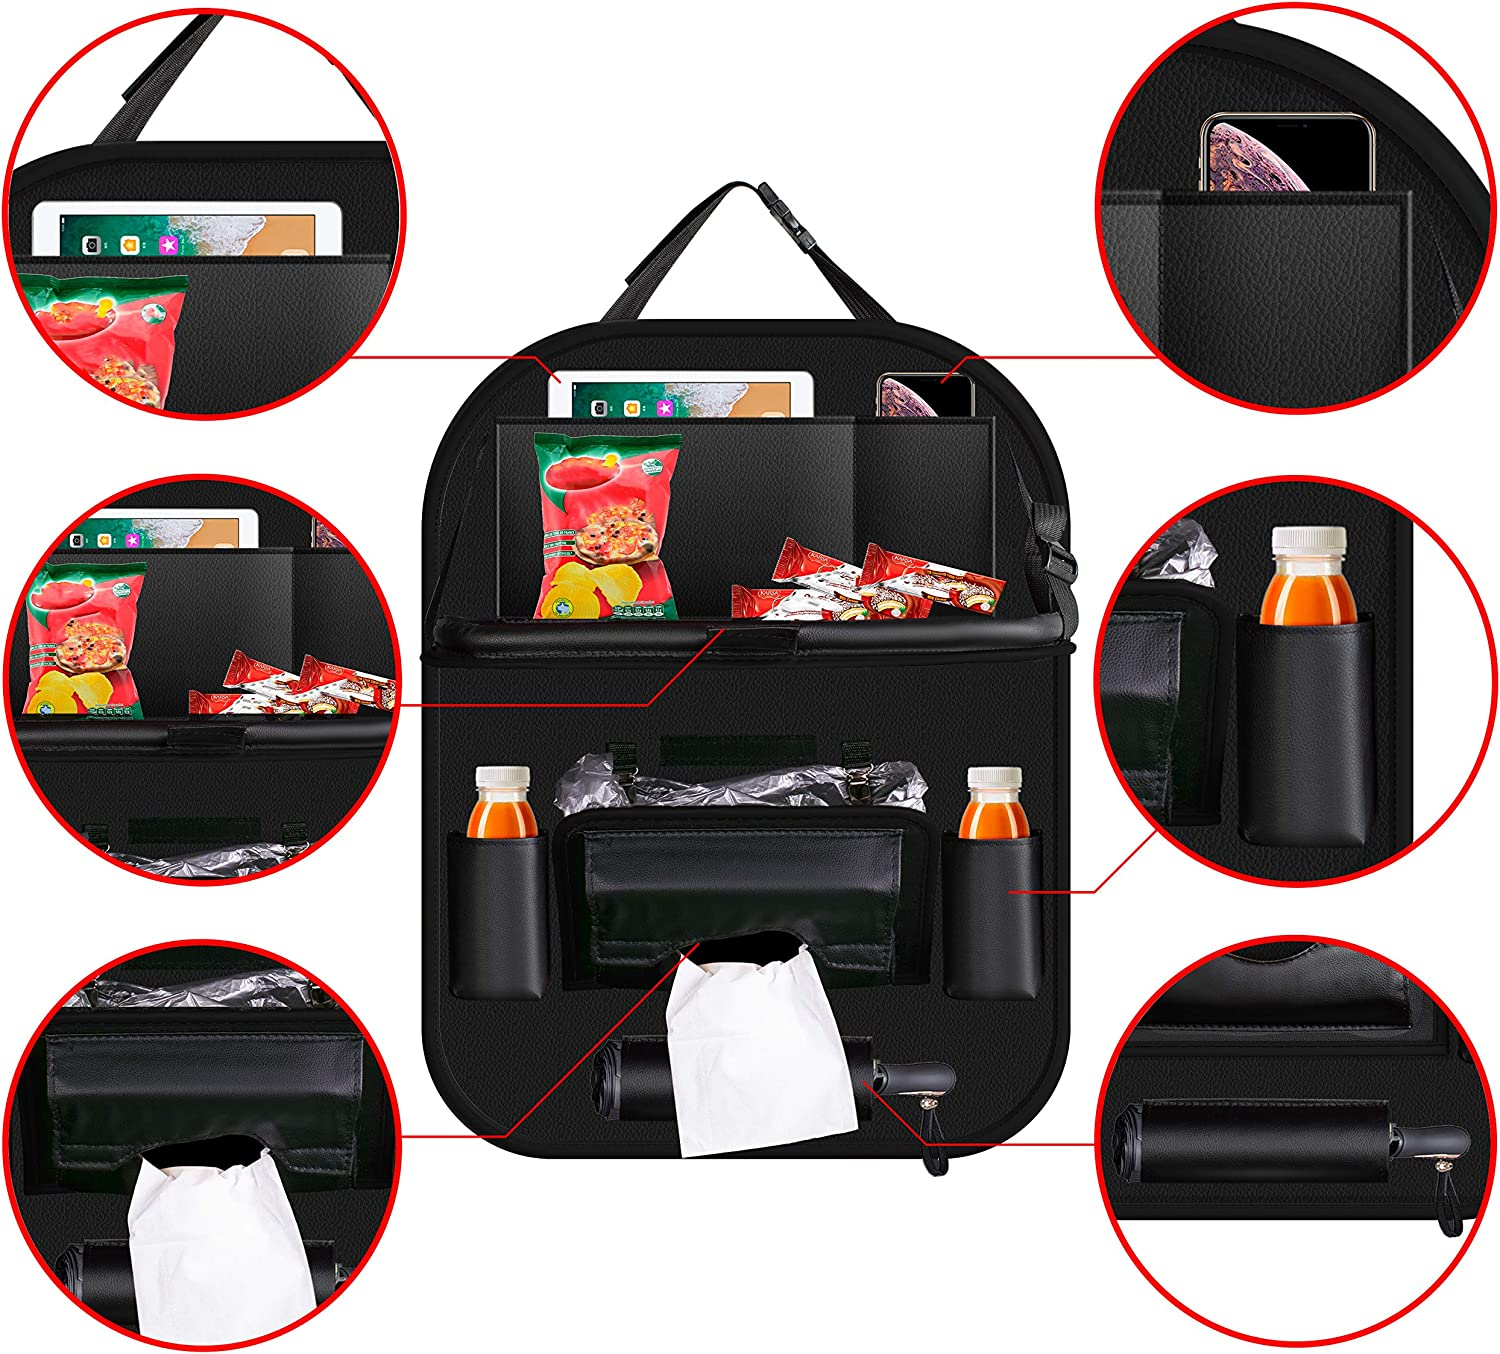 Back Seat Organizers with Tray Leather Holder Storage for Kids Toy Bottle Drink Travel Accessories Waterproof and Durable Black red 2 Pack FLY OCEAN Backseat Car Organizer